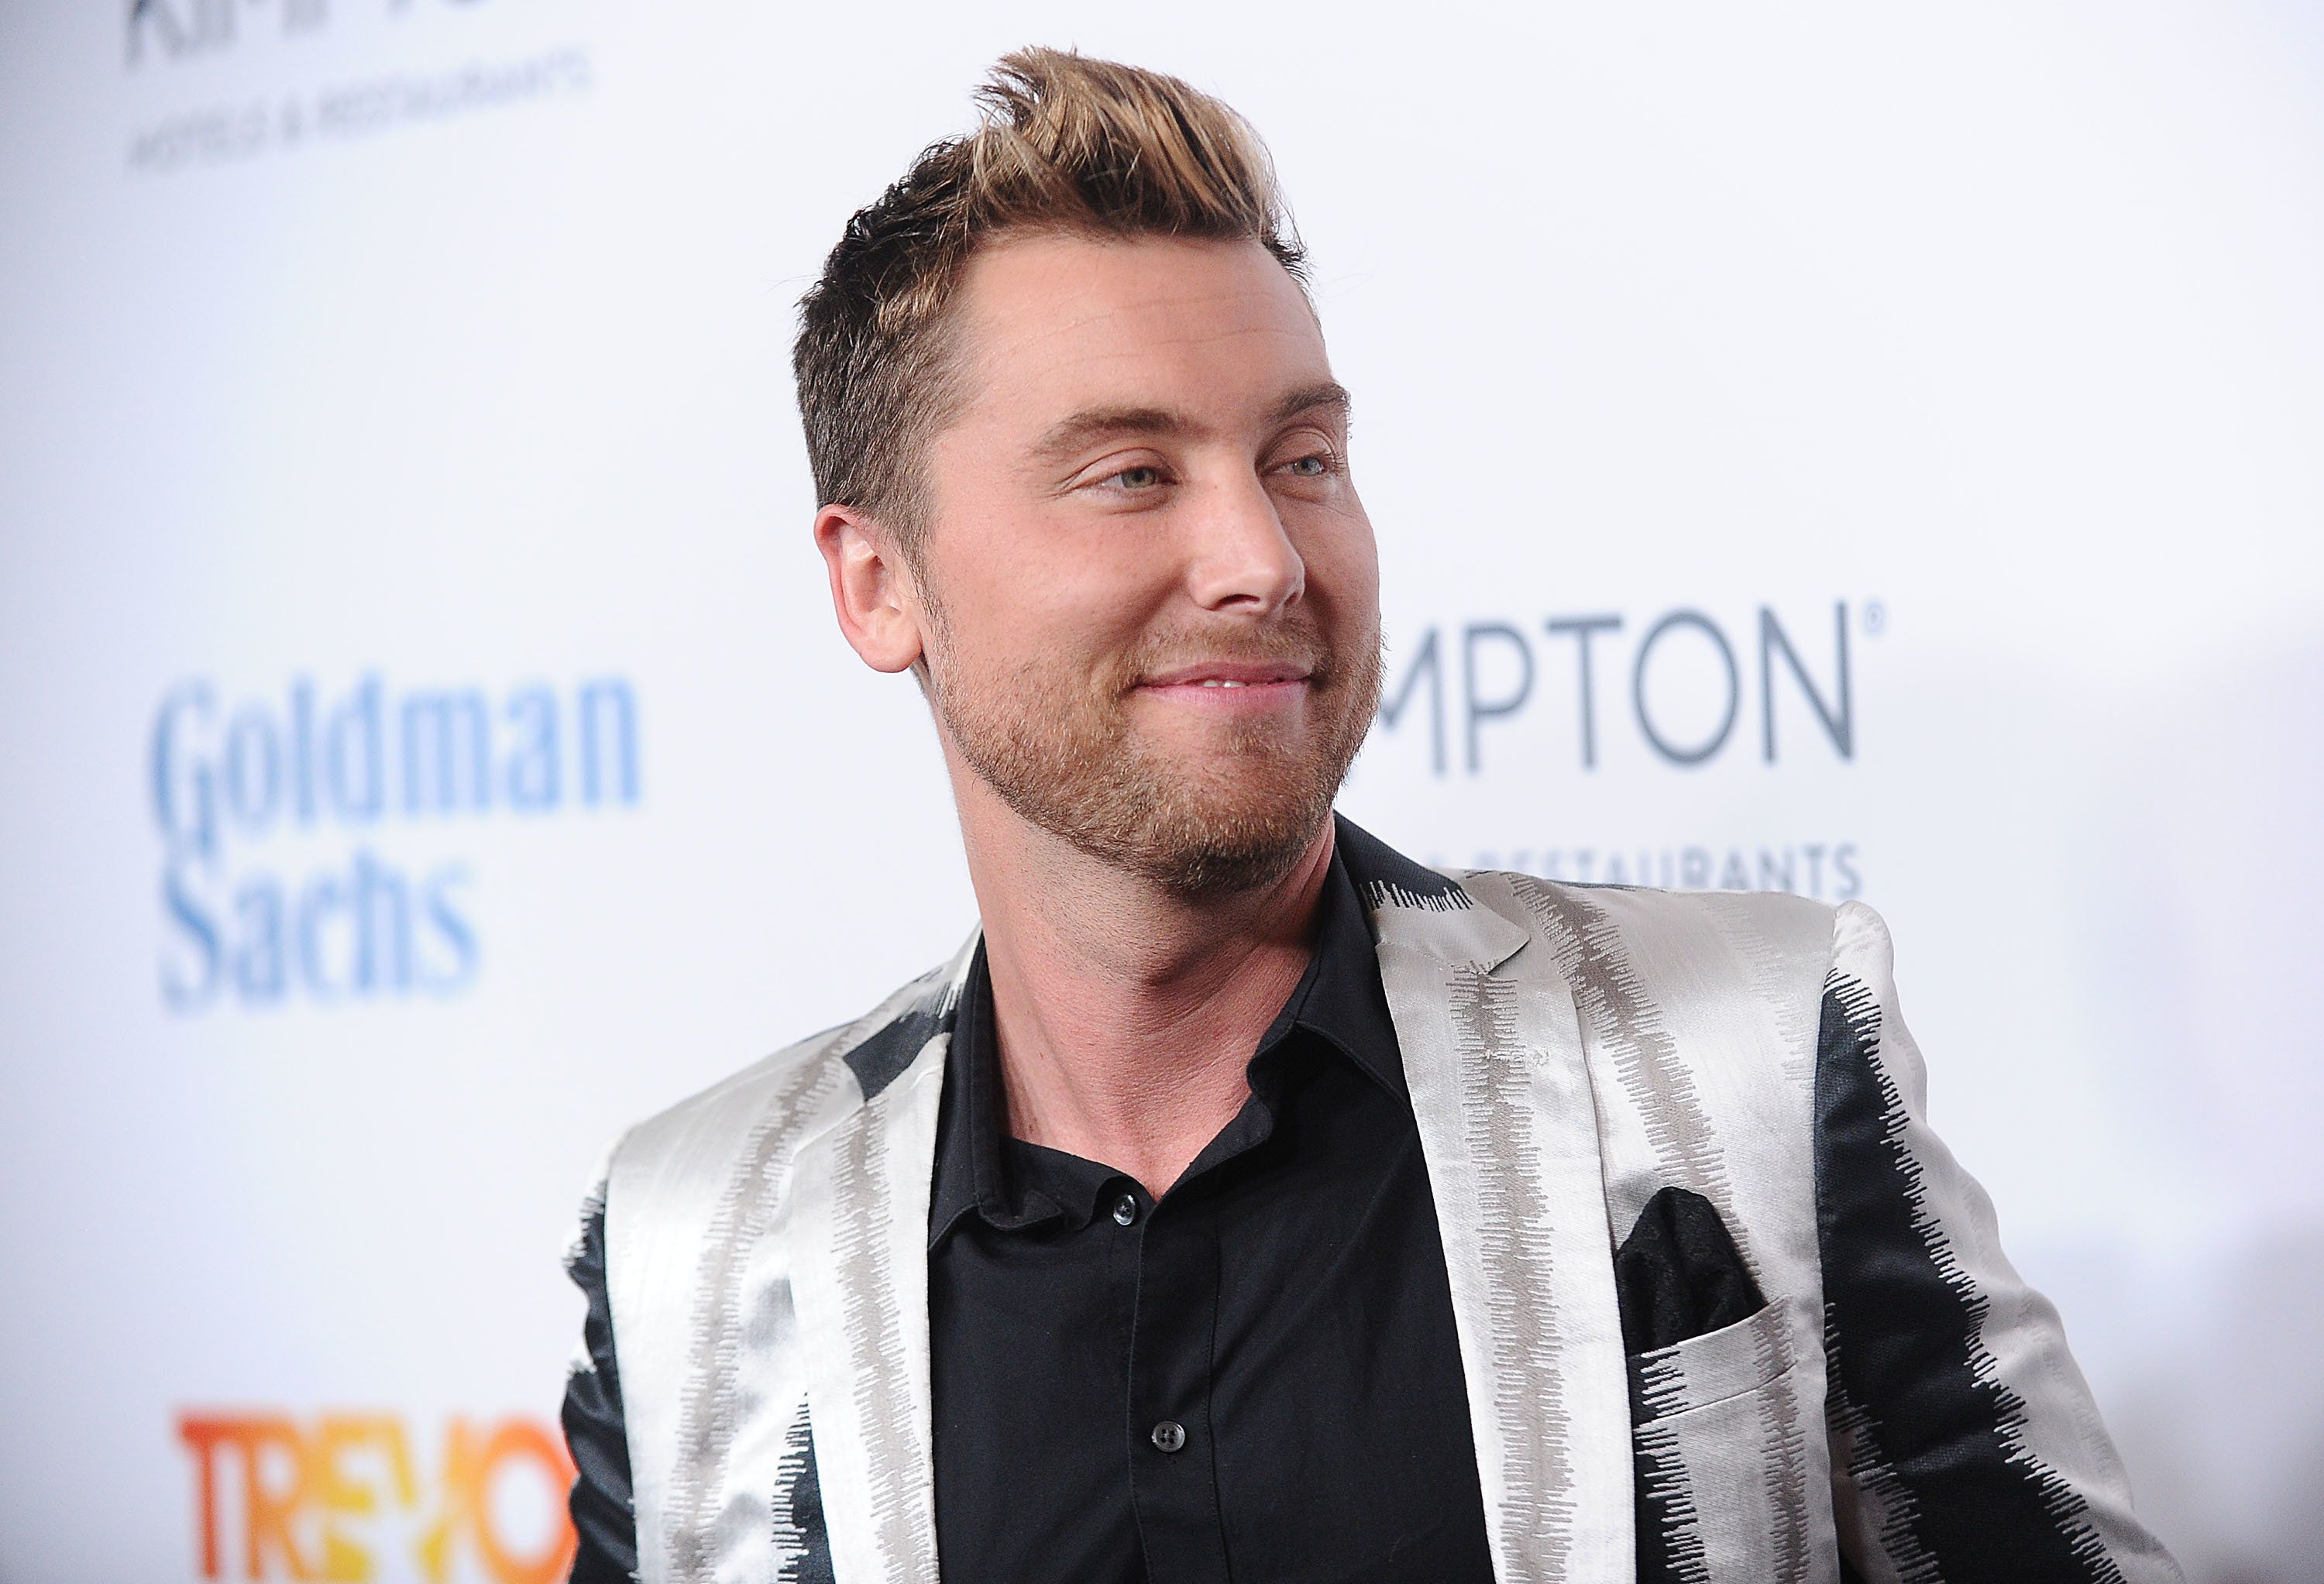 BEVERLY HILLS, CA - DECEMBER 04: Singer Lance Bass attends the TrevorLIVE Los Angeles 2016 fundraiser at The Beverly Hilton Hotel on December 4, 2016 in Beverly Hills, California.  (Photo by Jason LaVeris/FilmMagic)